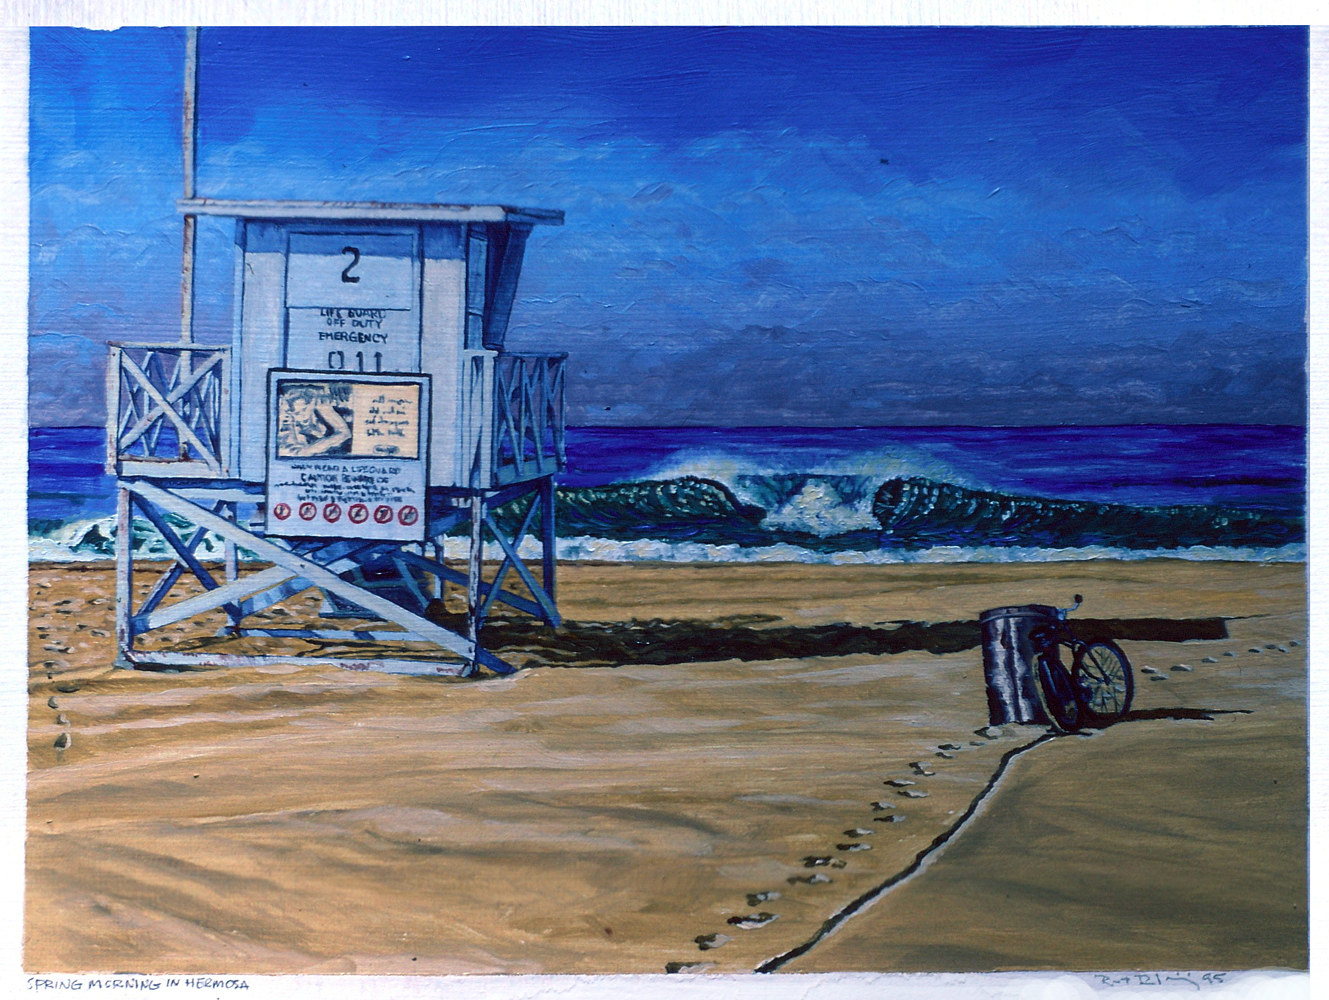 WP Spring Morning in Hermosa 1995  by Robert Milling